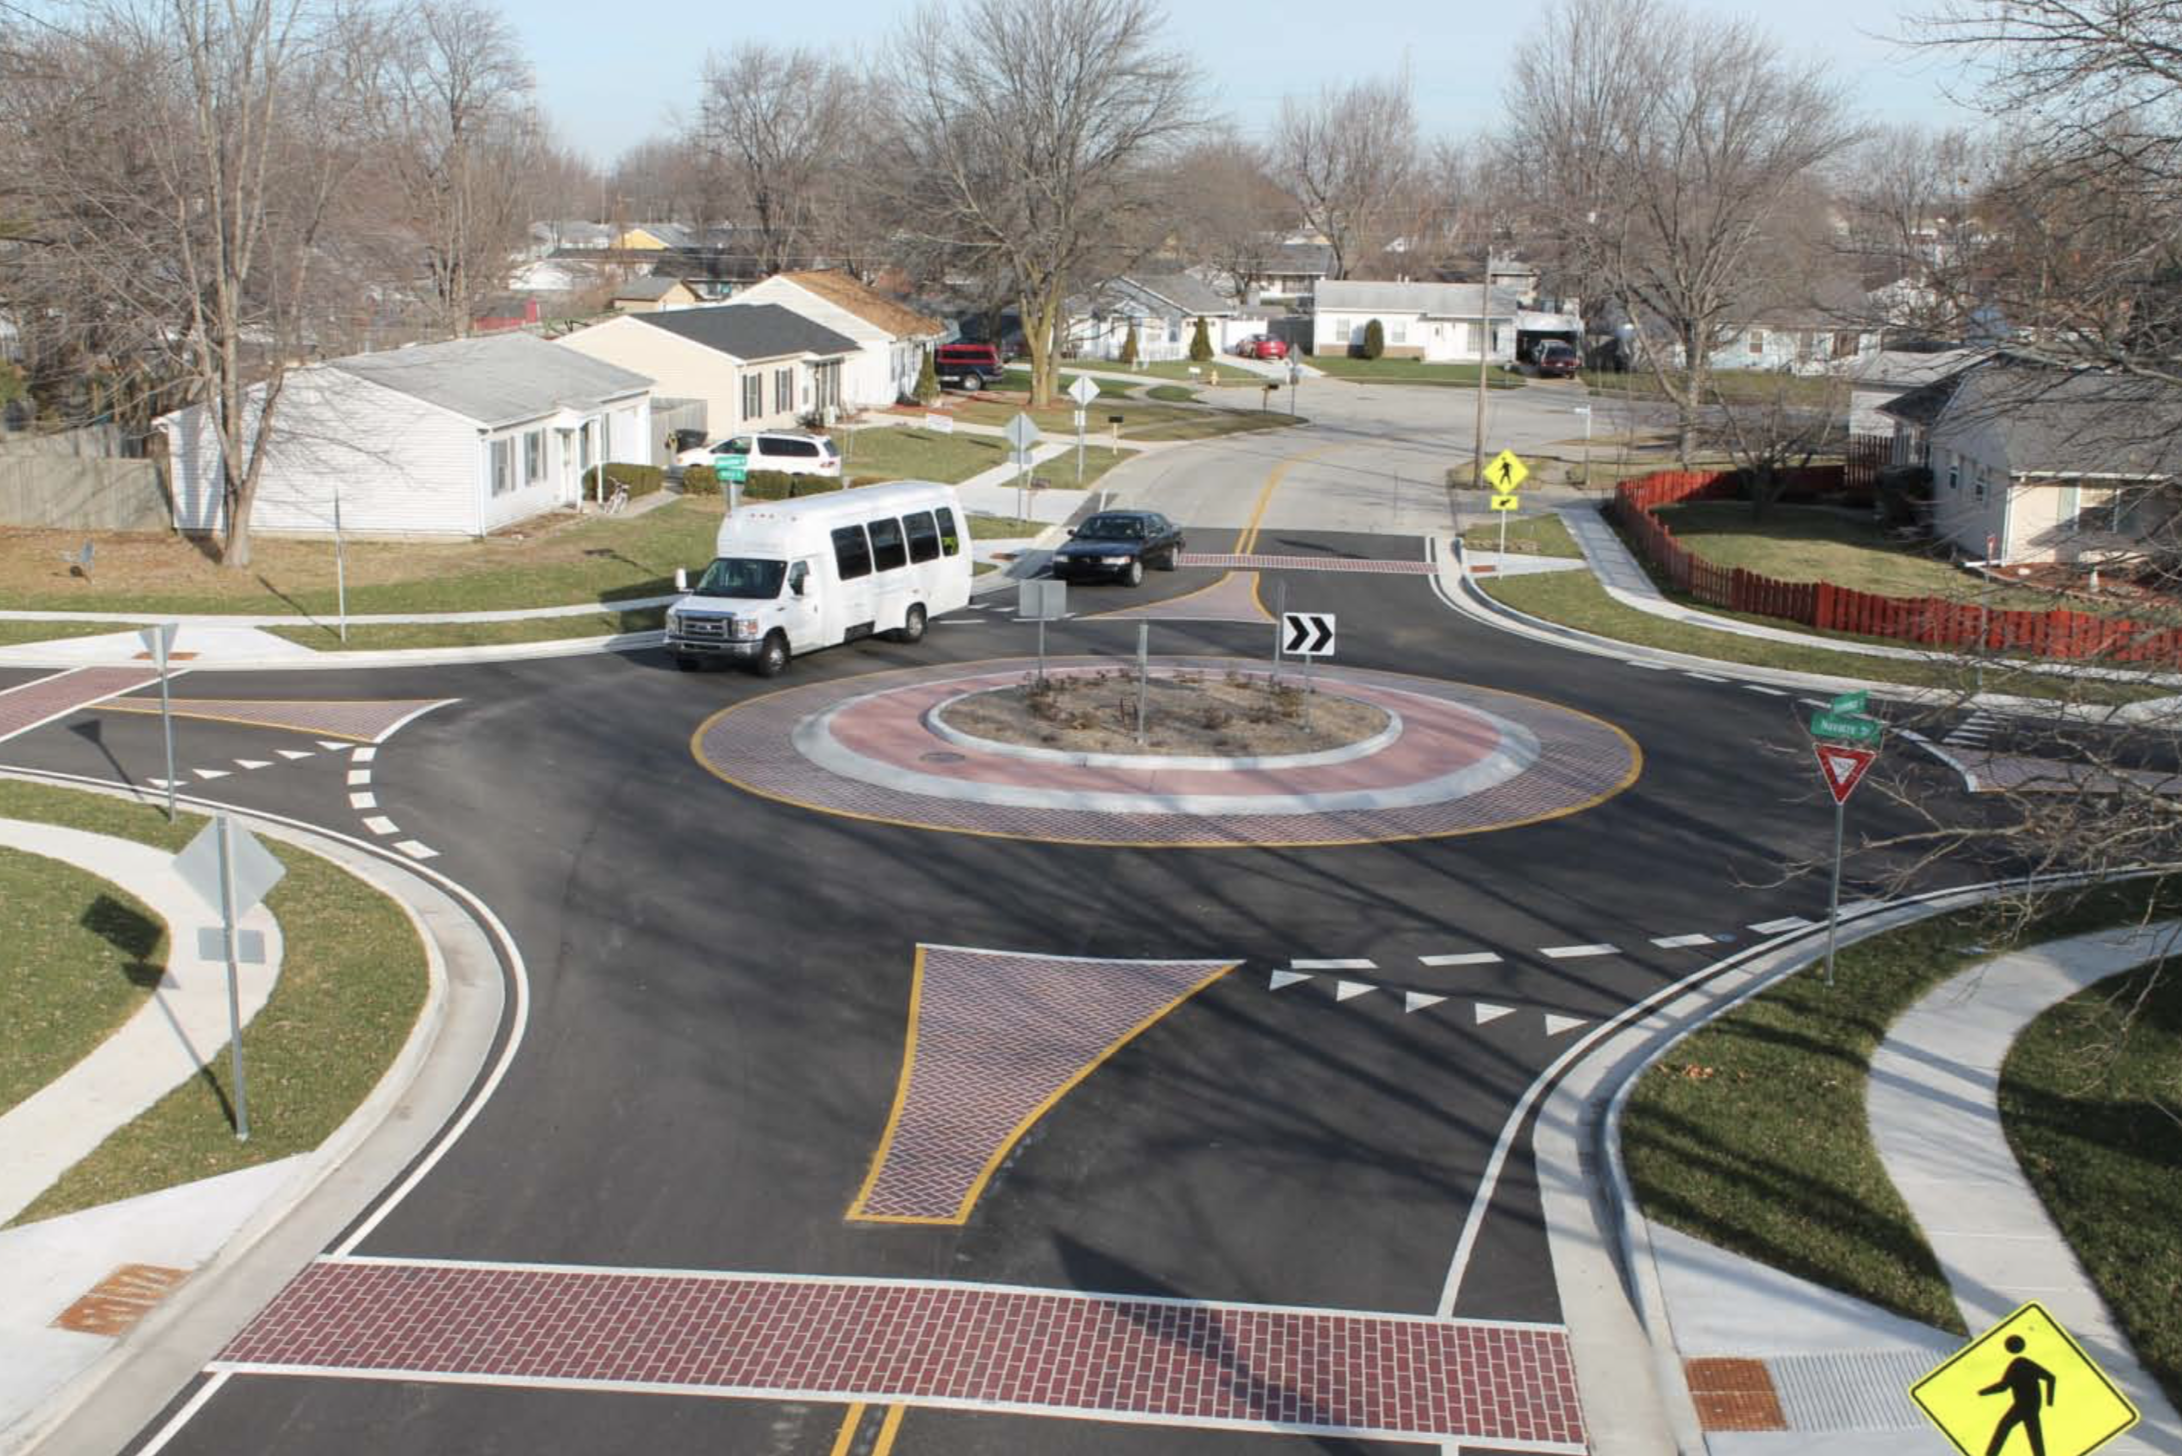 Shenandoah Roundabout won an Indiana Quality Partnership Award  Lafayette, IN  HSS did the pavement markings including the Brick effect (It was preformed thermoplastic marking). HSS also made and installed the permanent signage and did the temporary traffic control during construction.